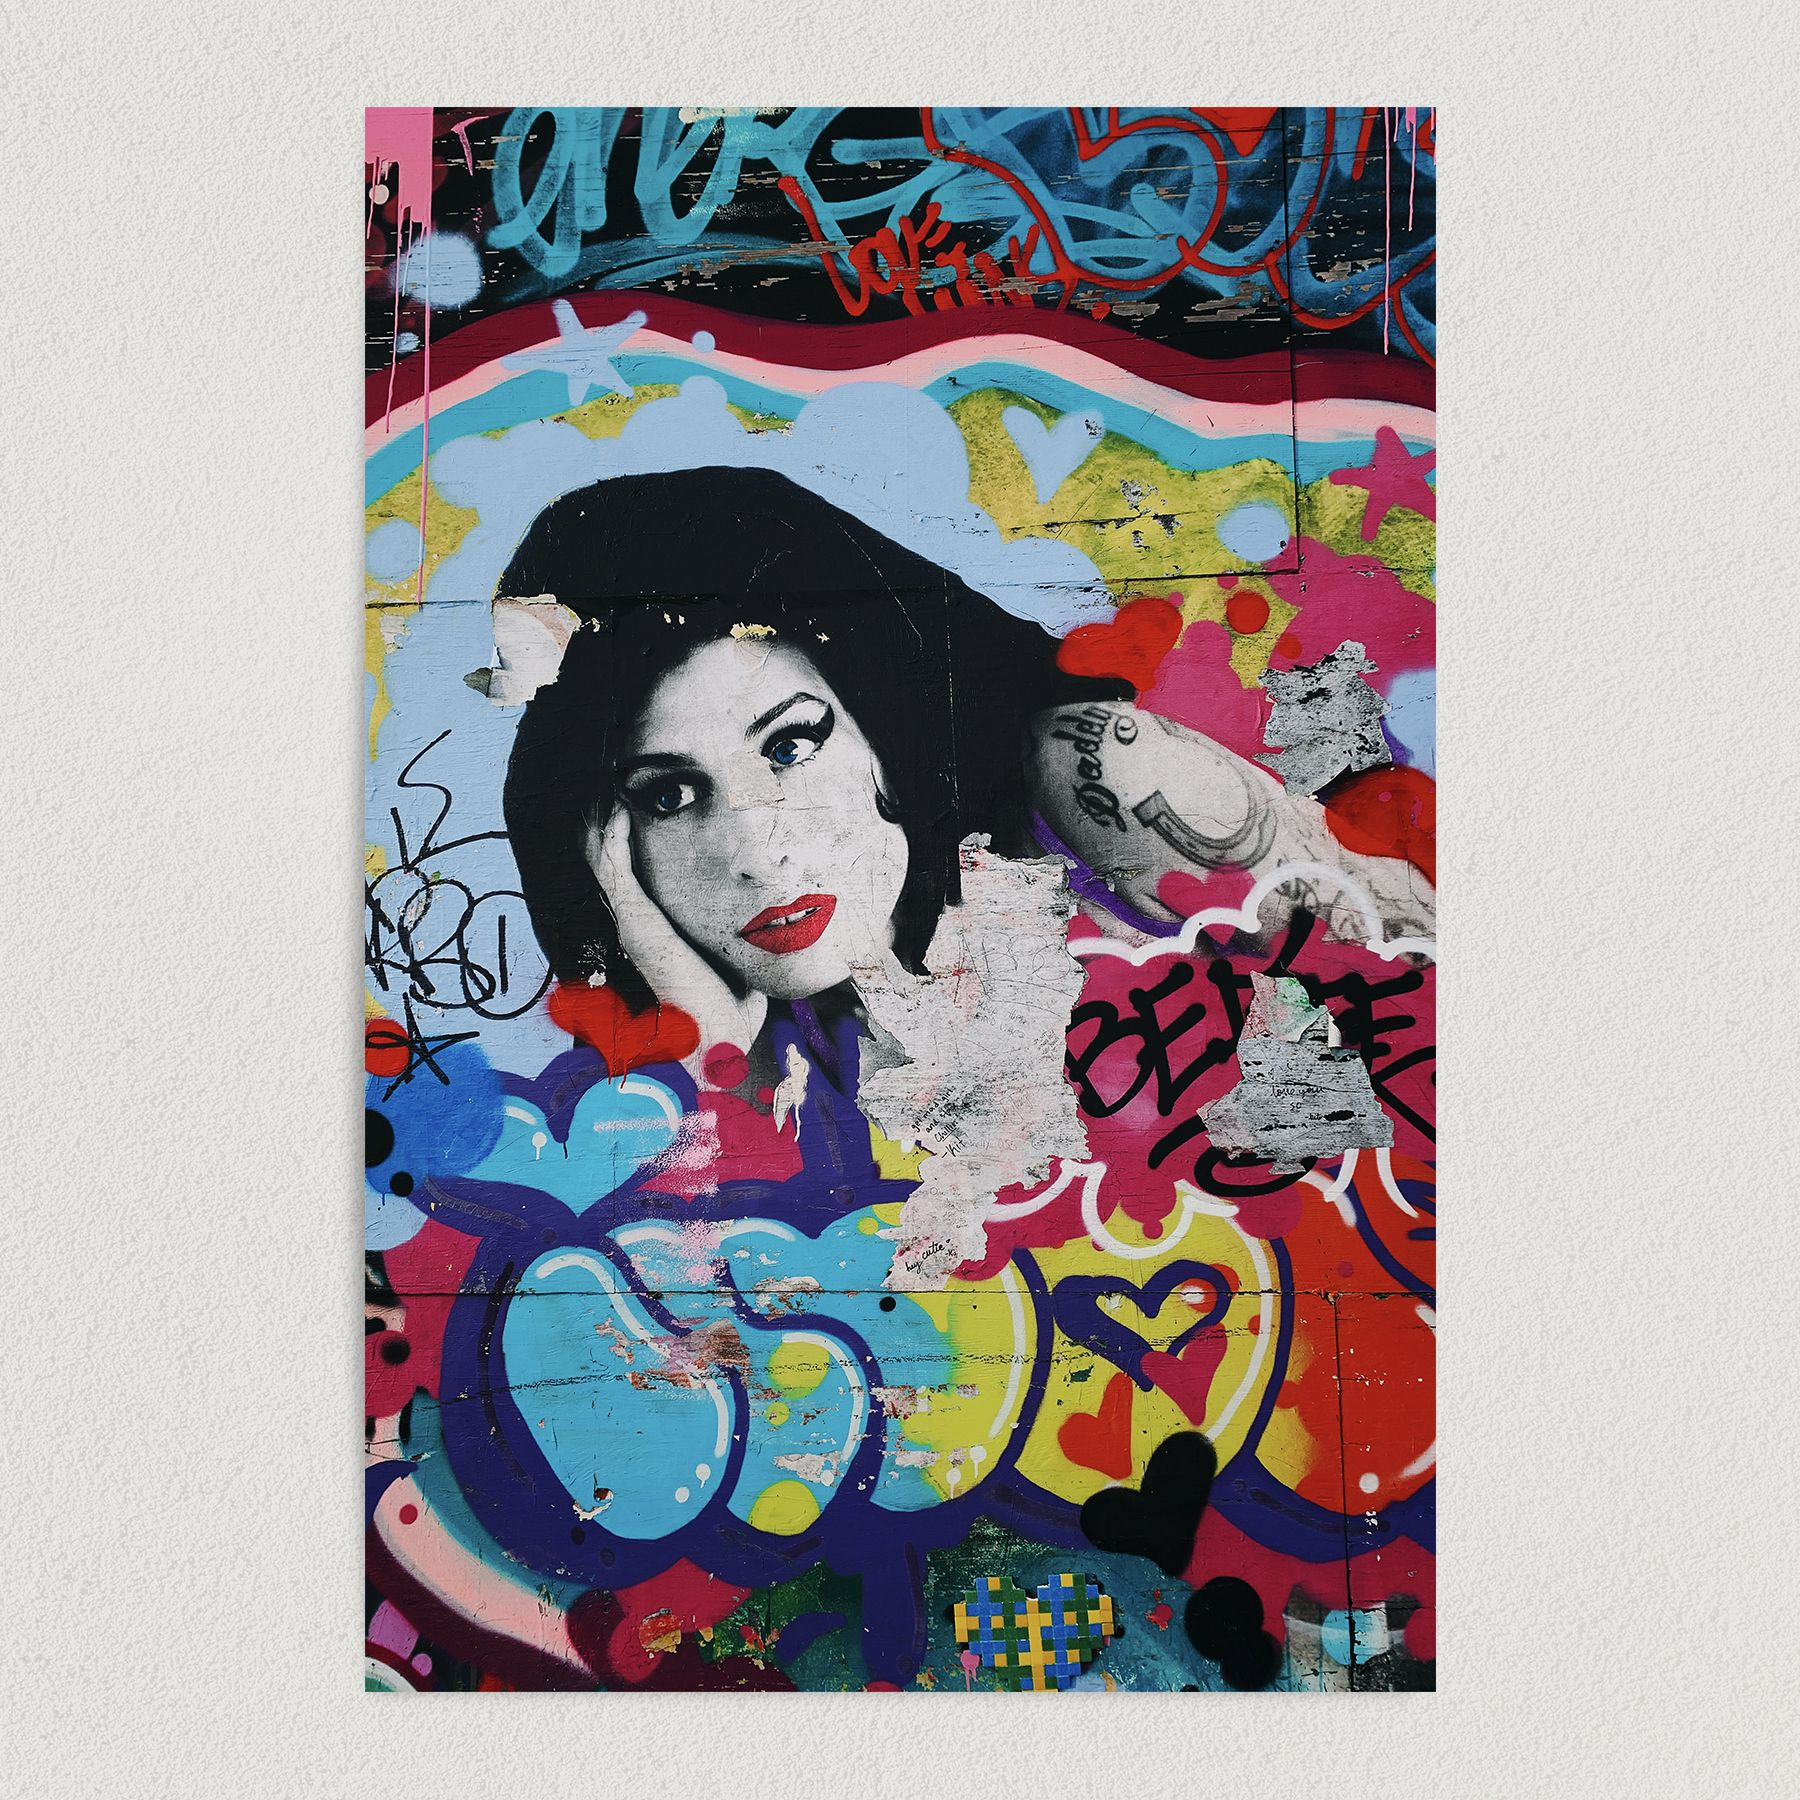 Amy Winehouse Graffiti Art Print Poster 12″ x 18″ Wall Art FP3172